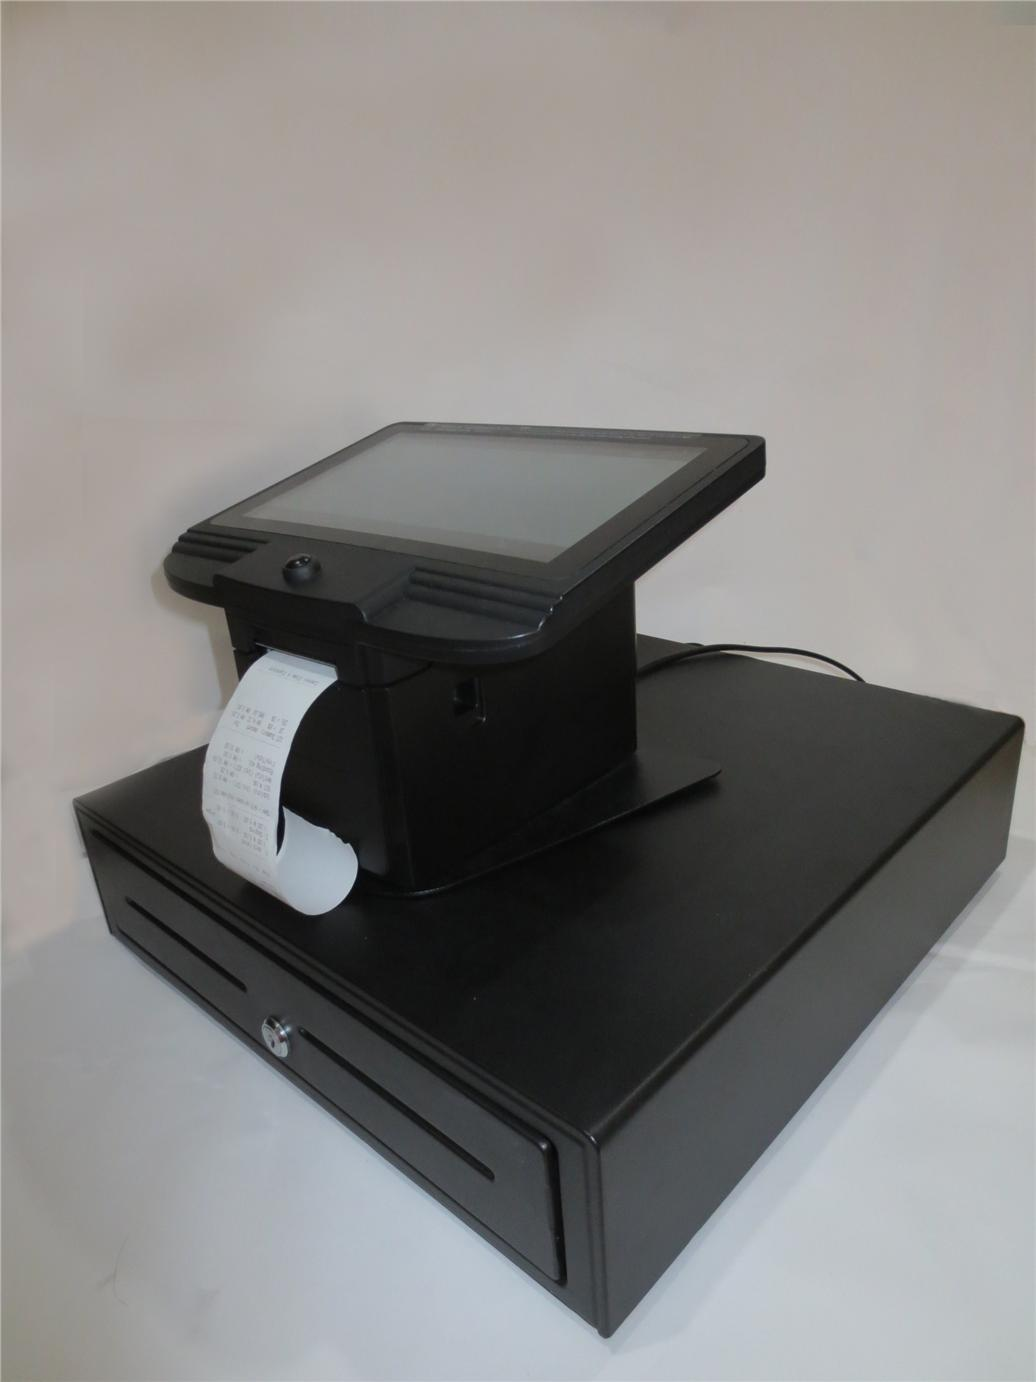 Android Based Cash Register (POS System)